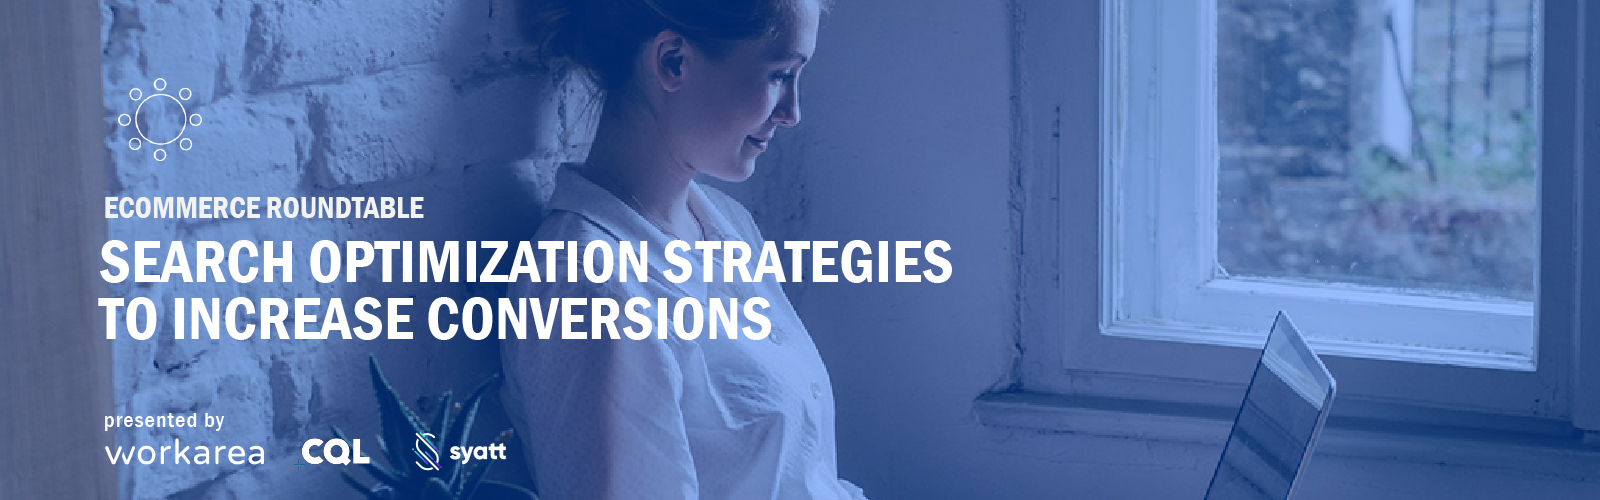 Search_Conversion_Optimization_Roundtable